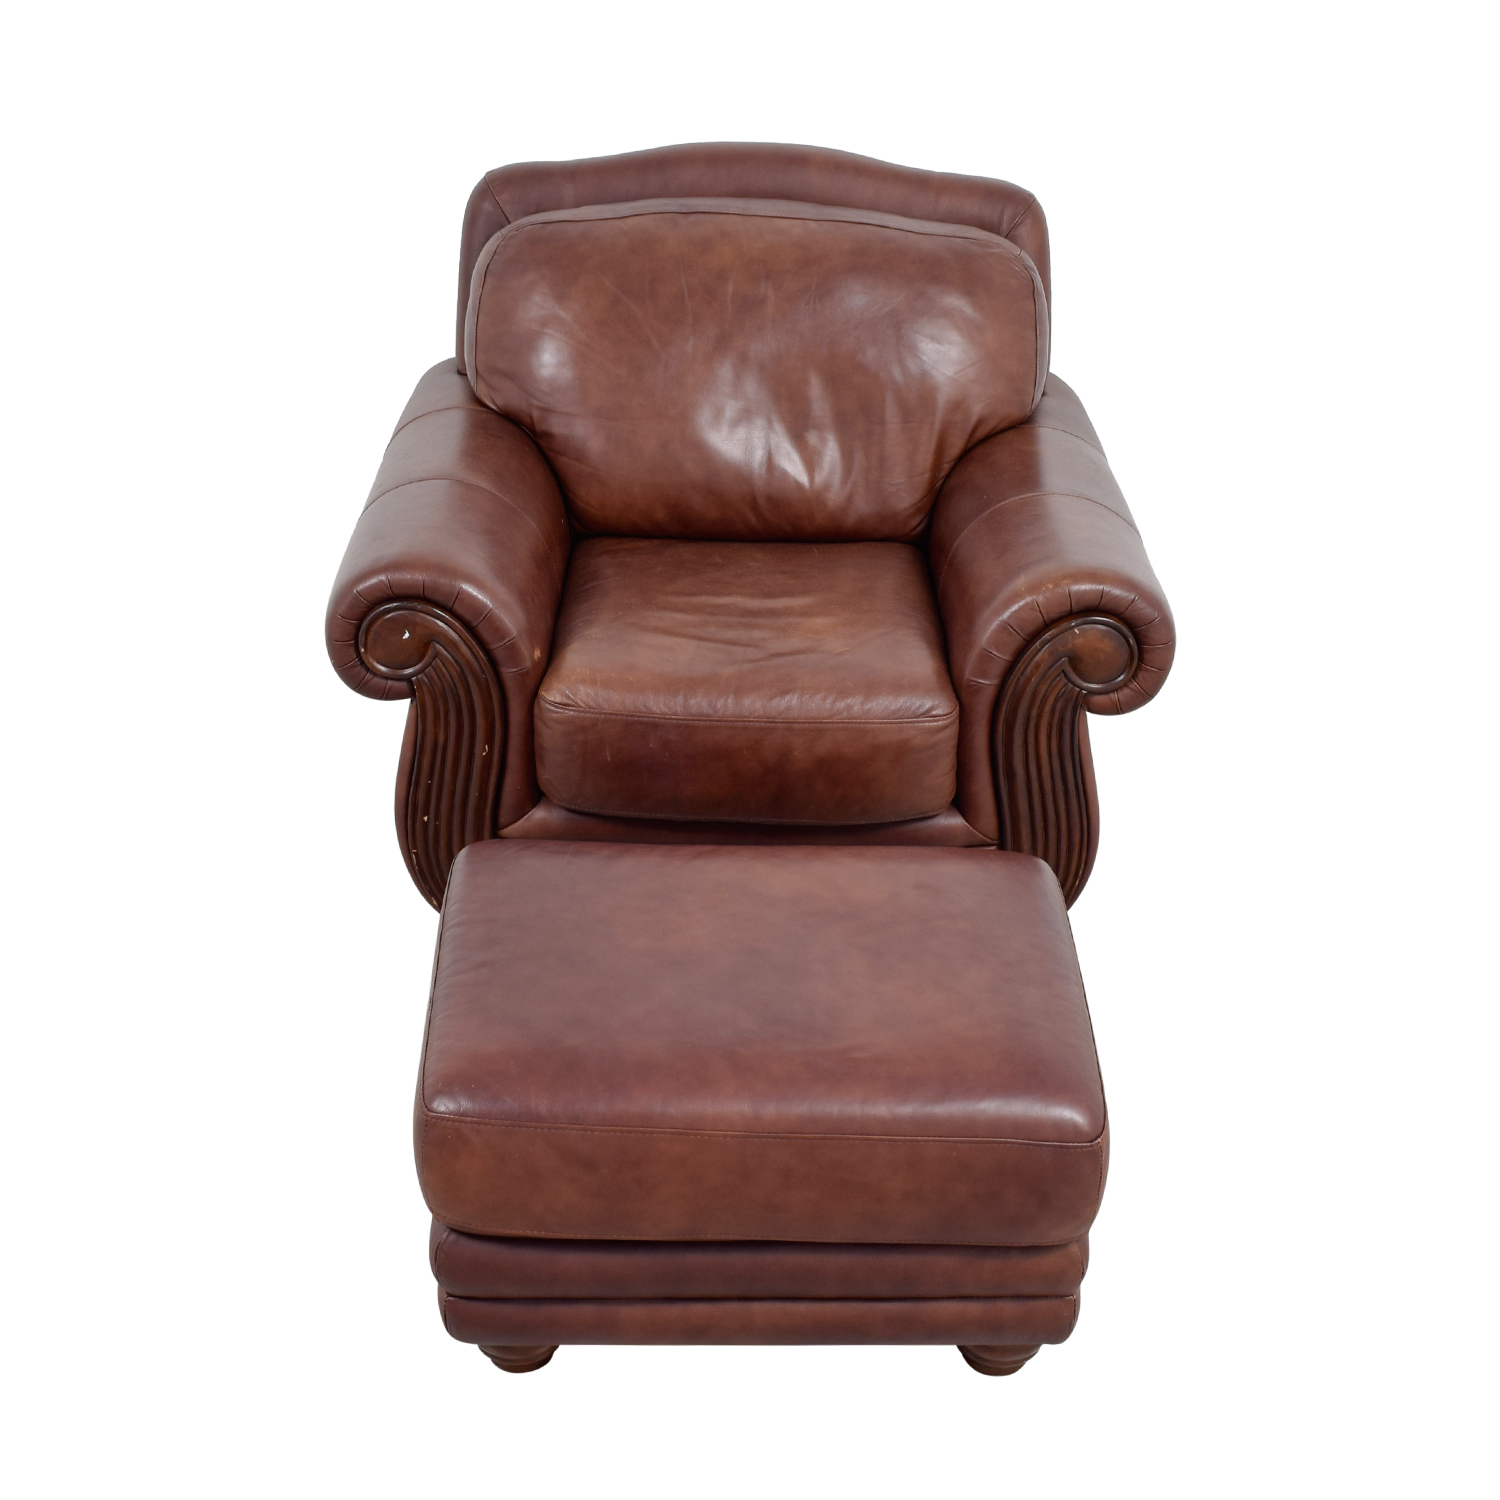 54 off rooms to go rooms to go brown leather chair and ottoman chairs. Black Bedroom Furniture Sets. Home Design Ideas